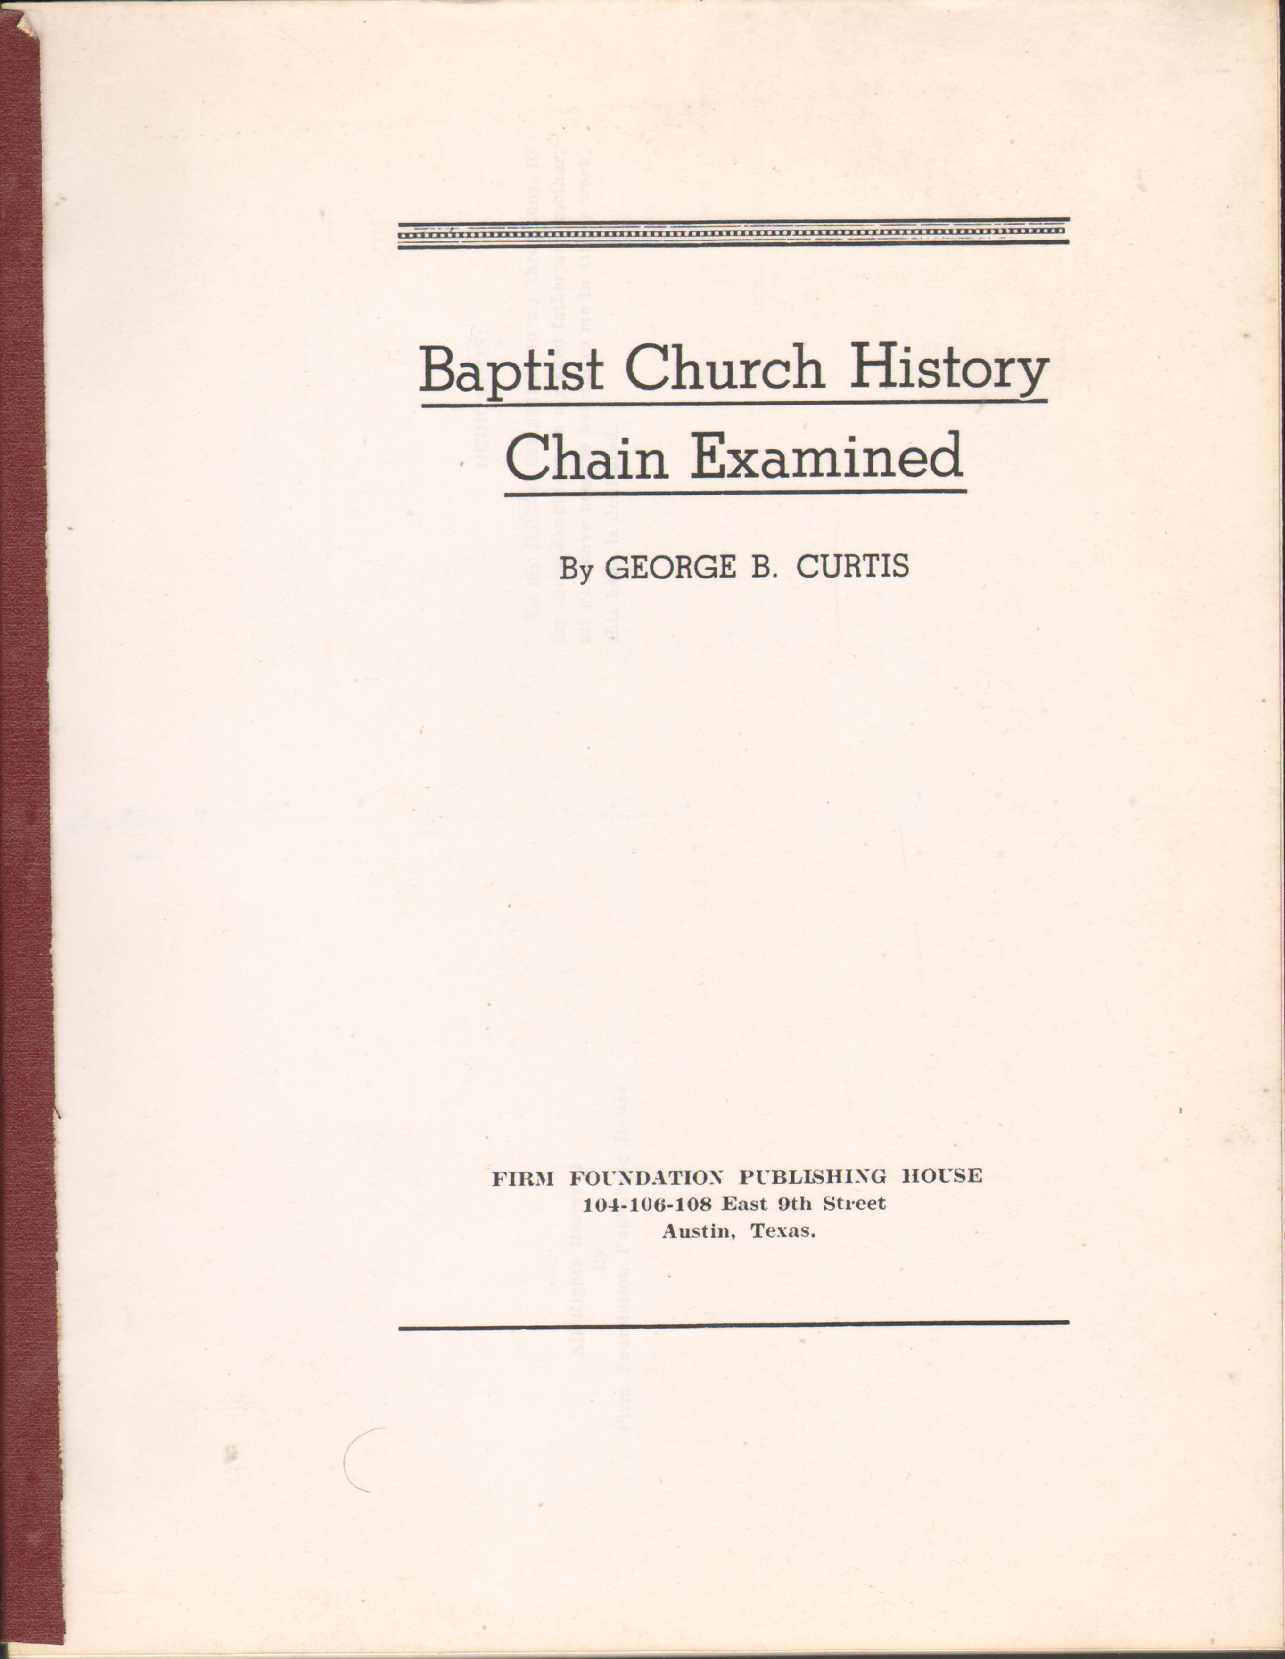 BAPTIST CHURCH HISTORY CHAIN EXAMINED, Curtis, George B